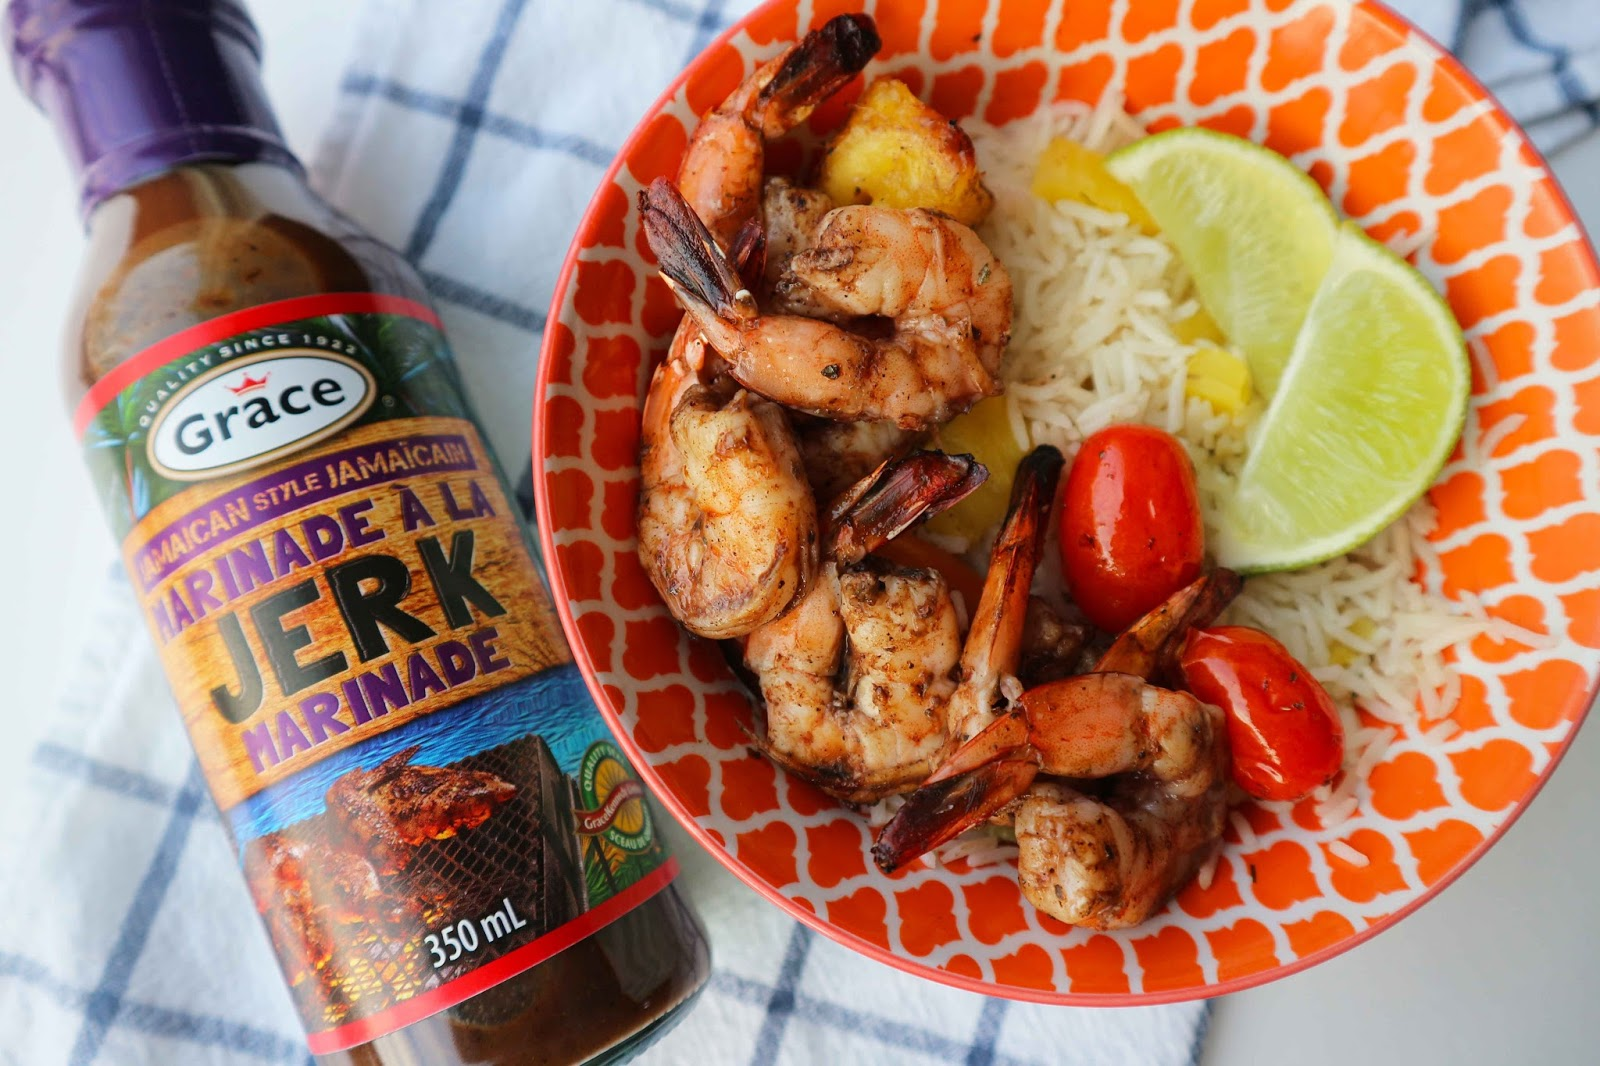 Jerk Shrimp Pineapple Rice